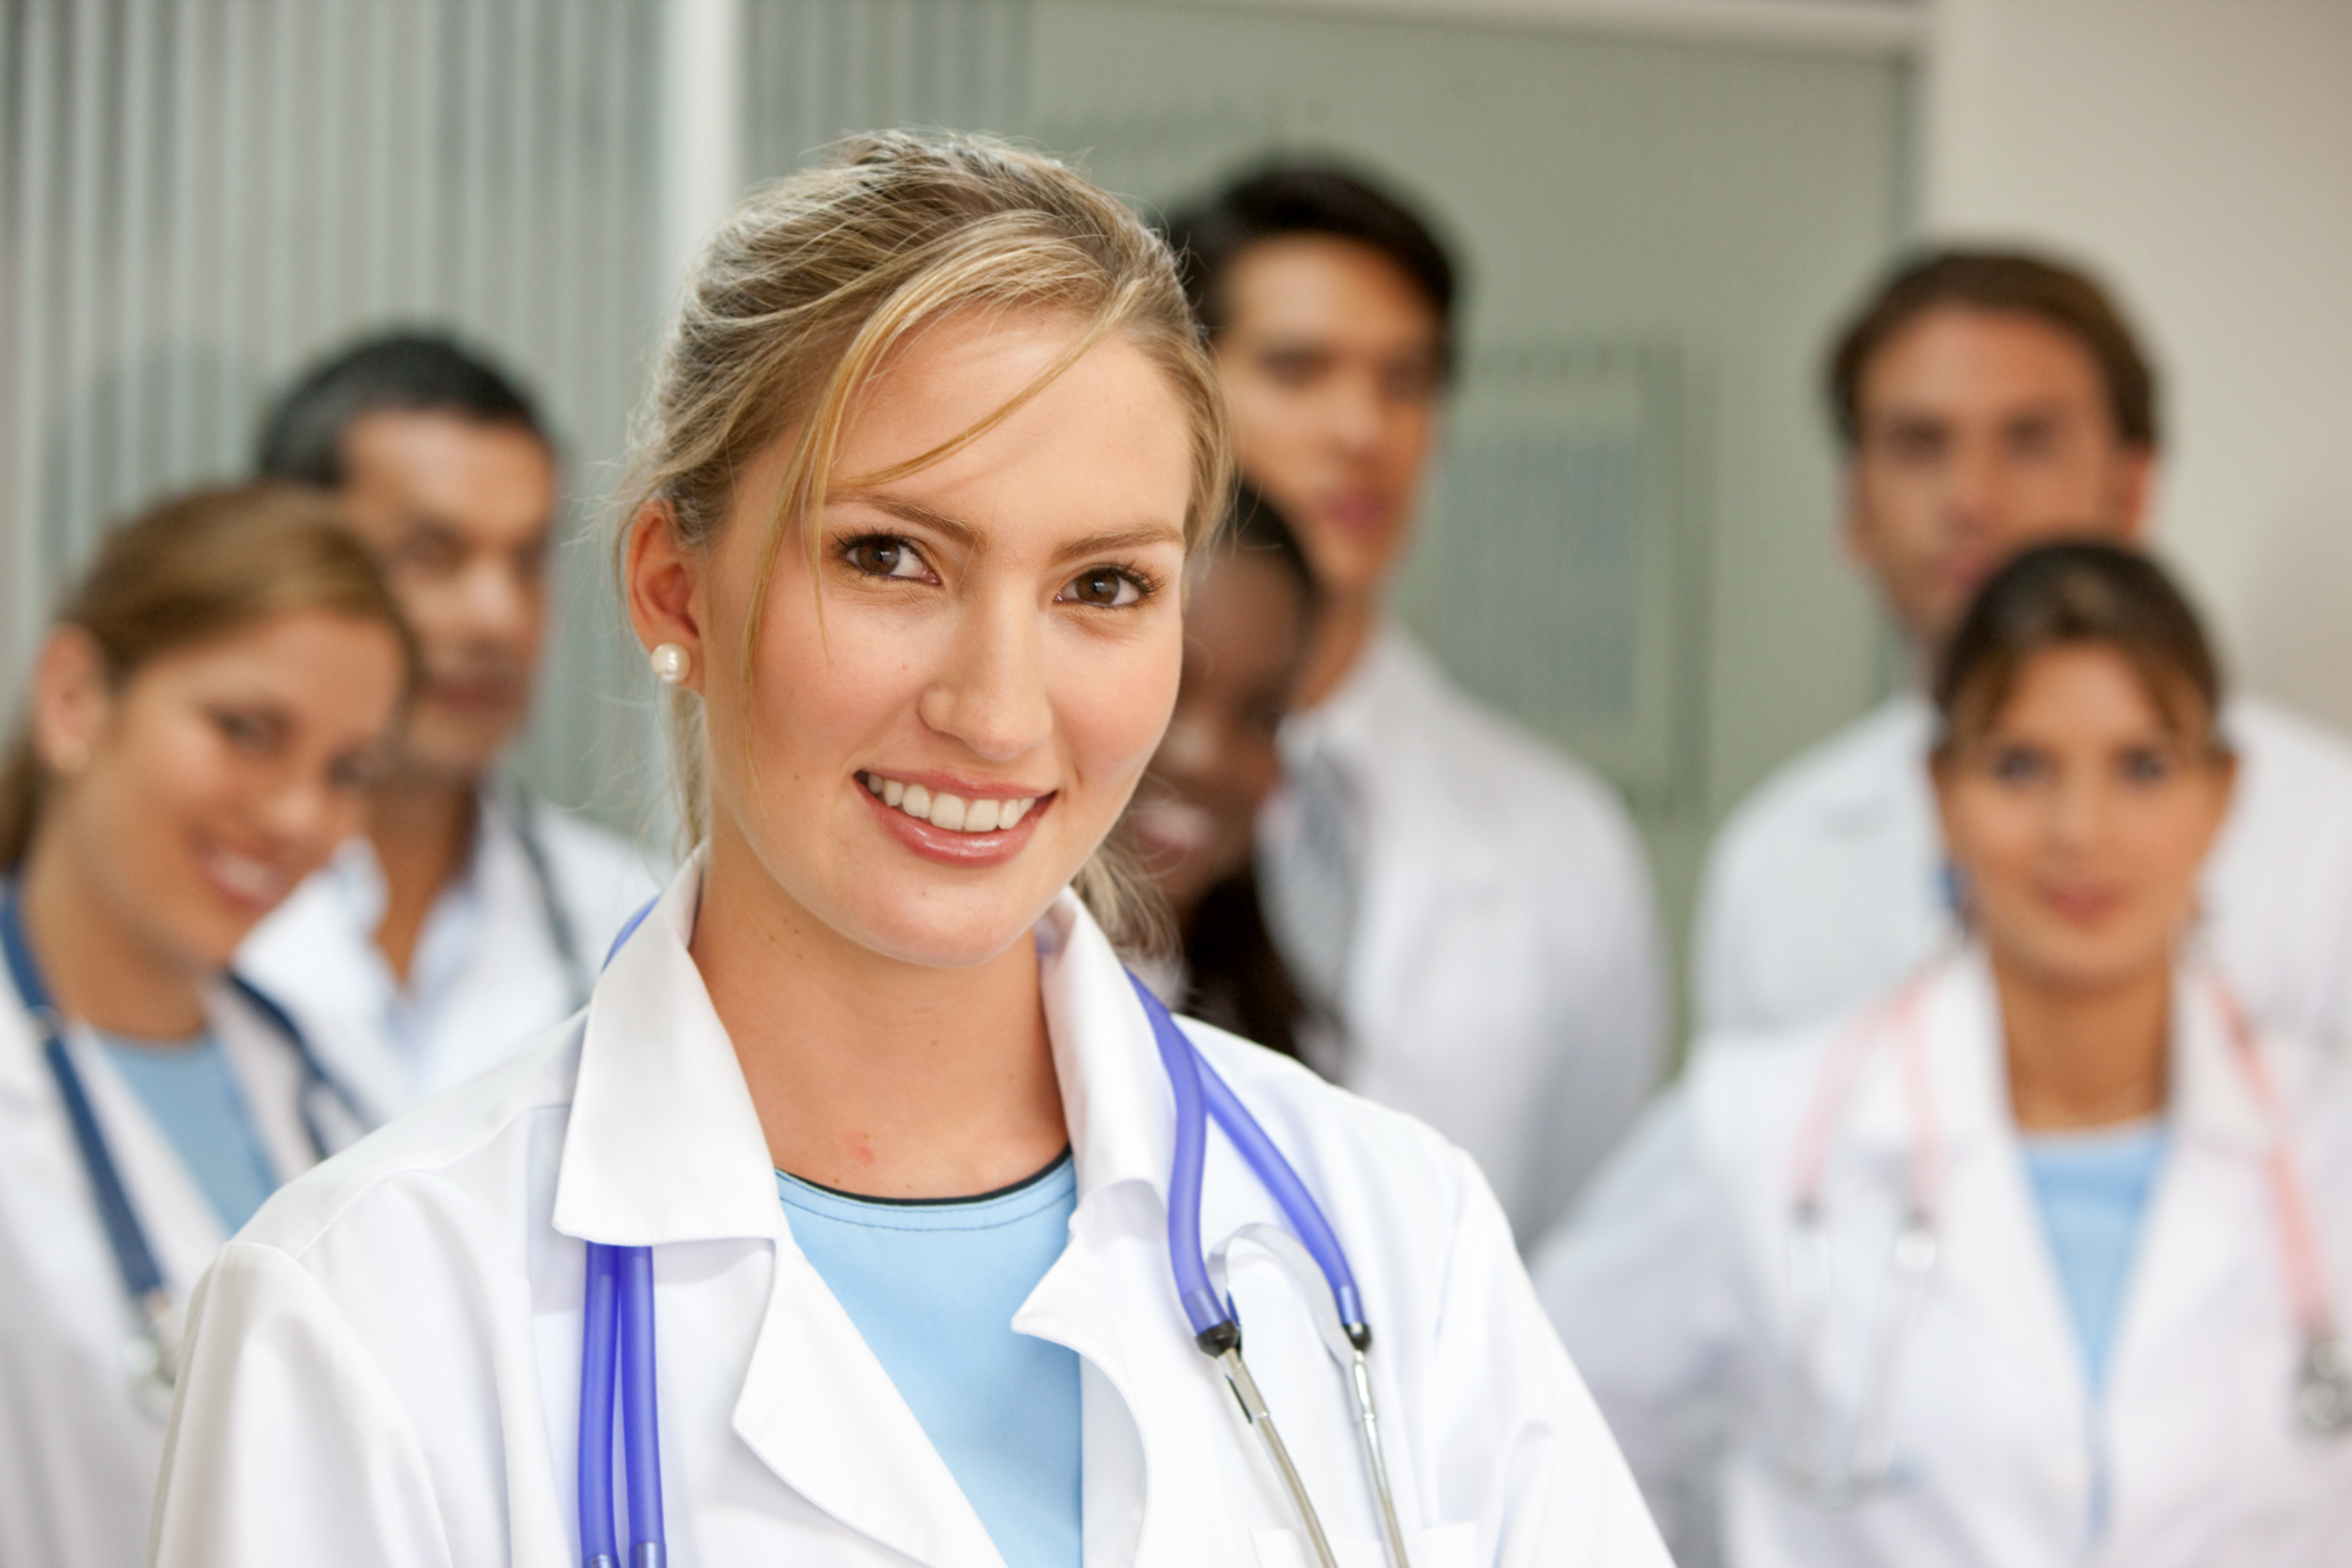 Indiana cna classes required training cna training cna training tacoma xflitez Choice Image